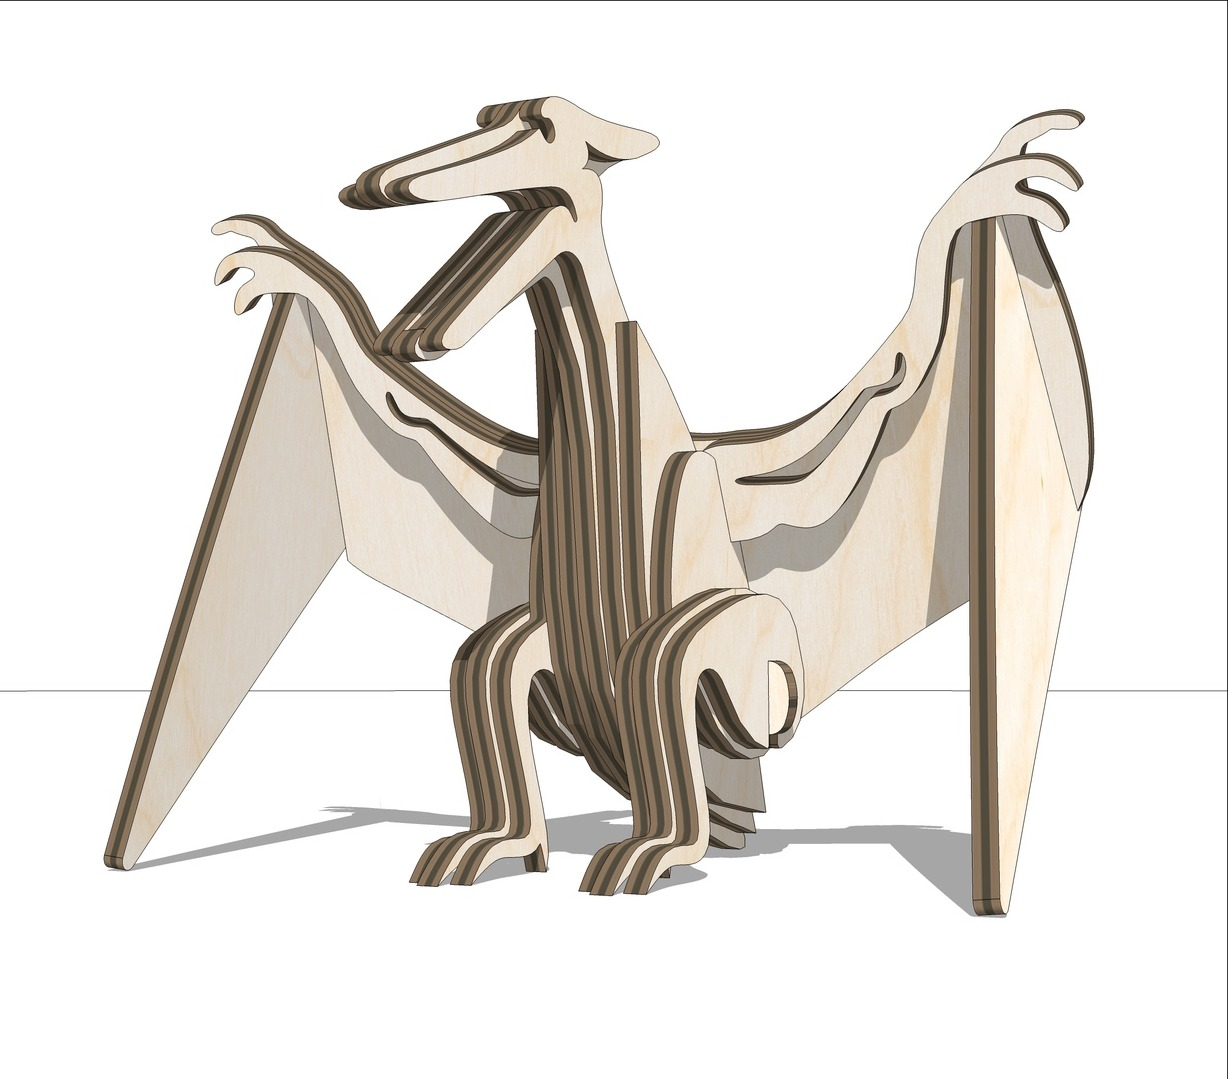 Laser Cut Wooden Pterodactyl Toy DXF File